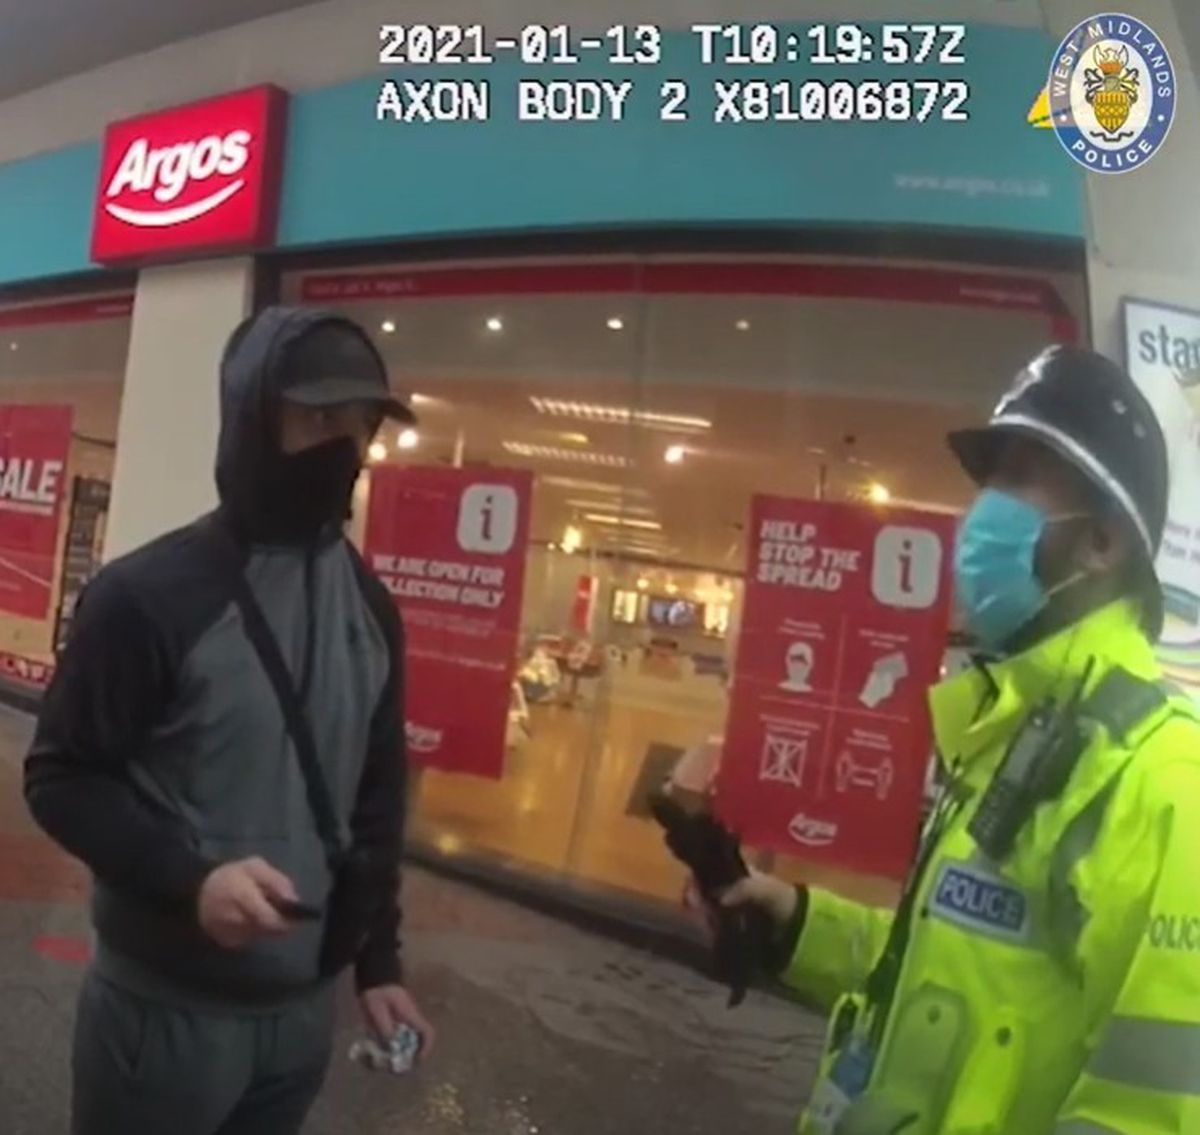 The officer asks Butler why he is in Birmingham